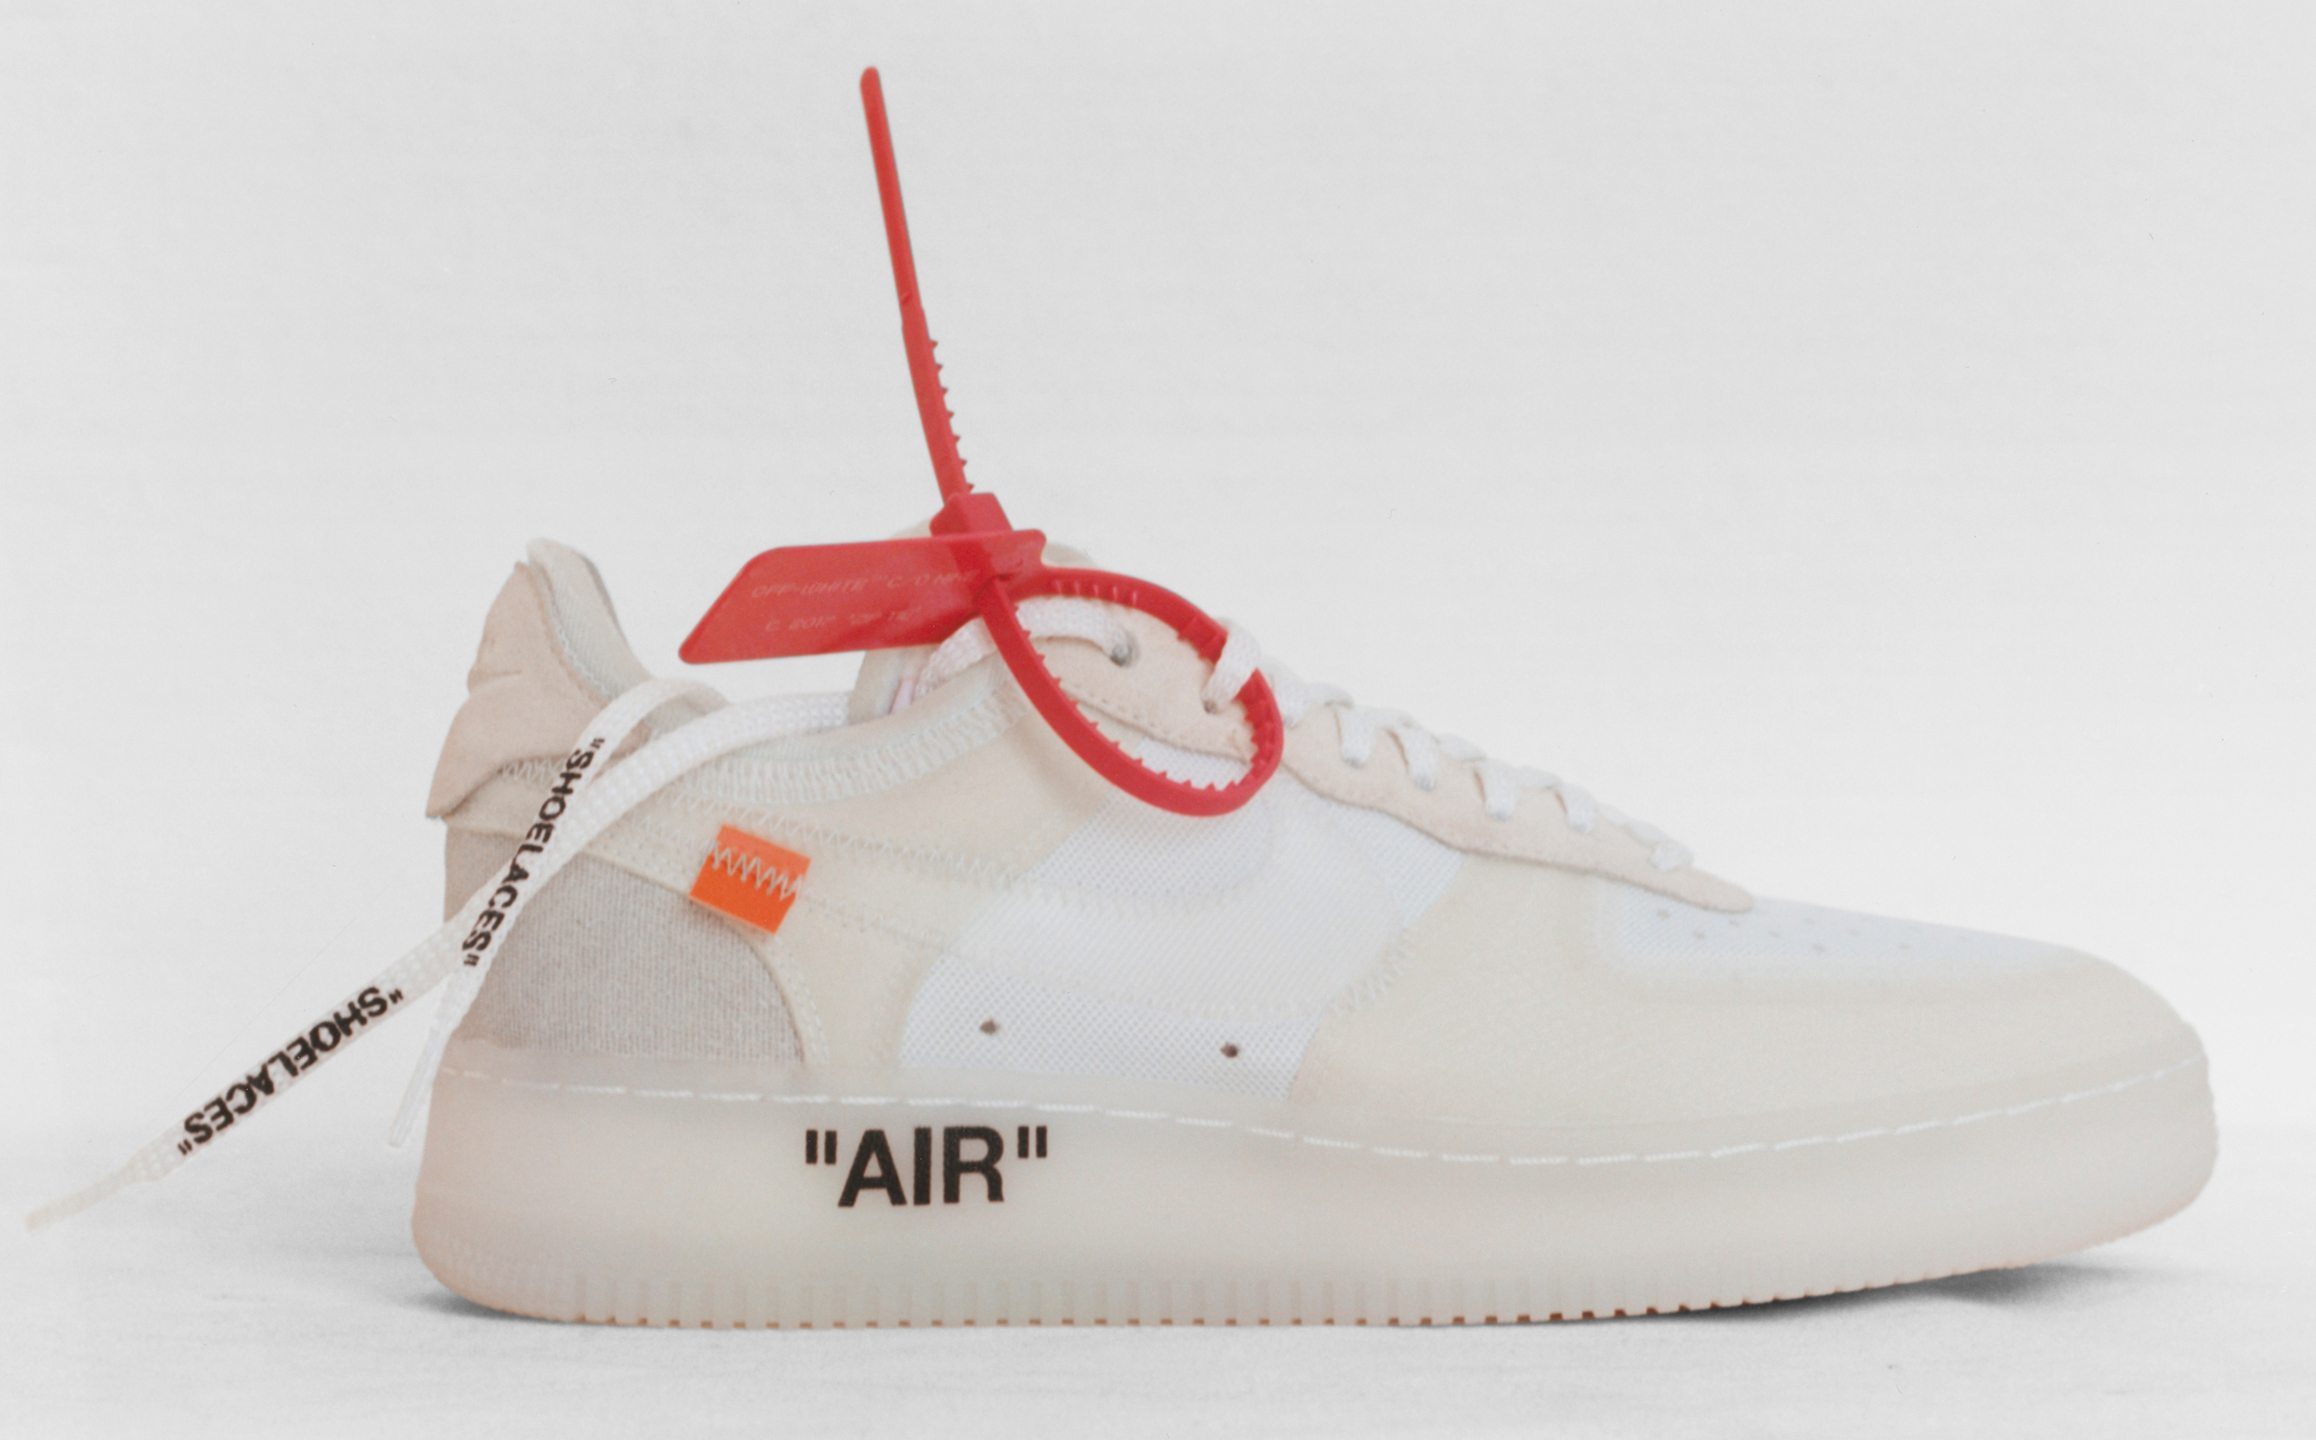 af1 x off white release date